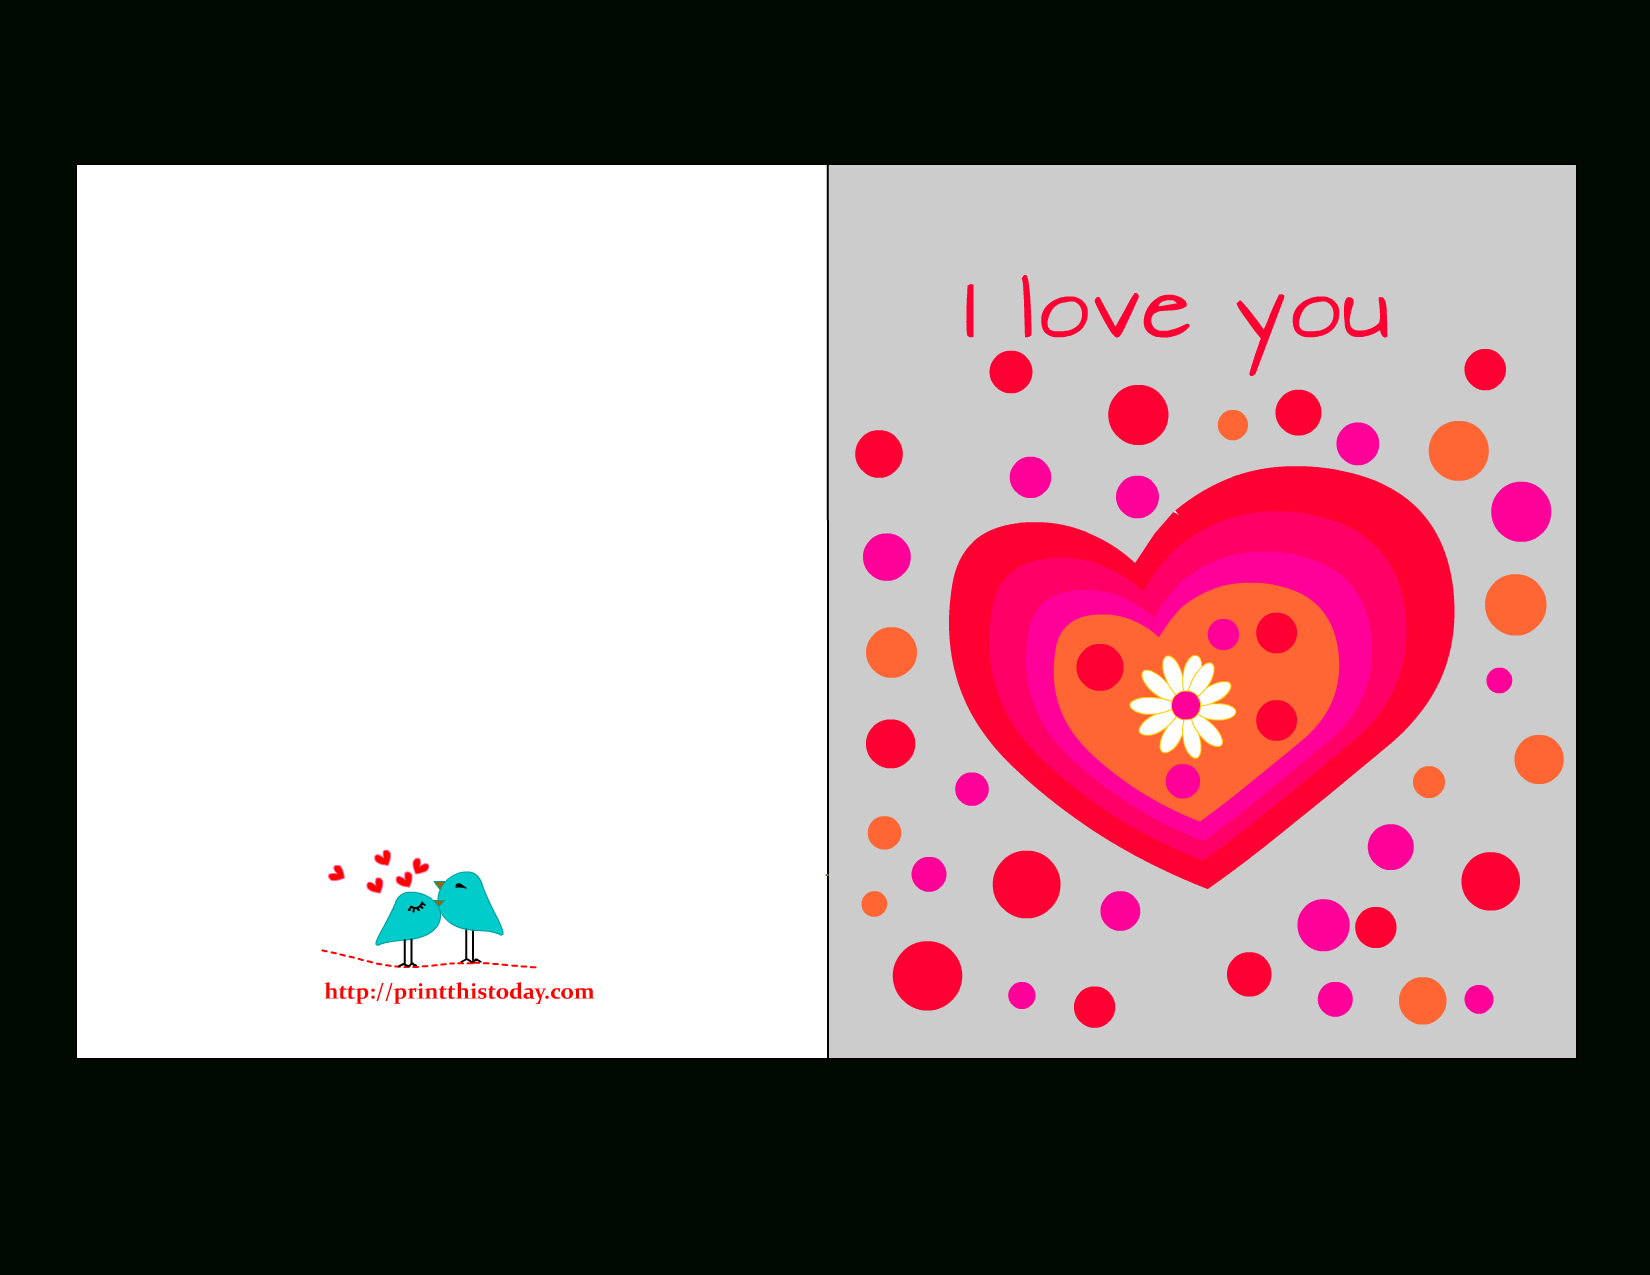 Free Printable Love Cards For Him - Free Printable Romantic Birthday Cards For Her